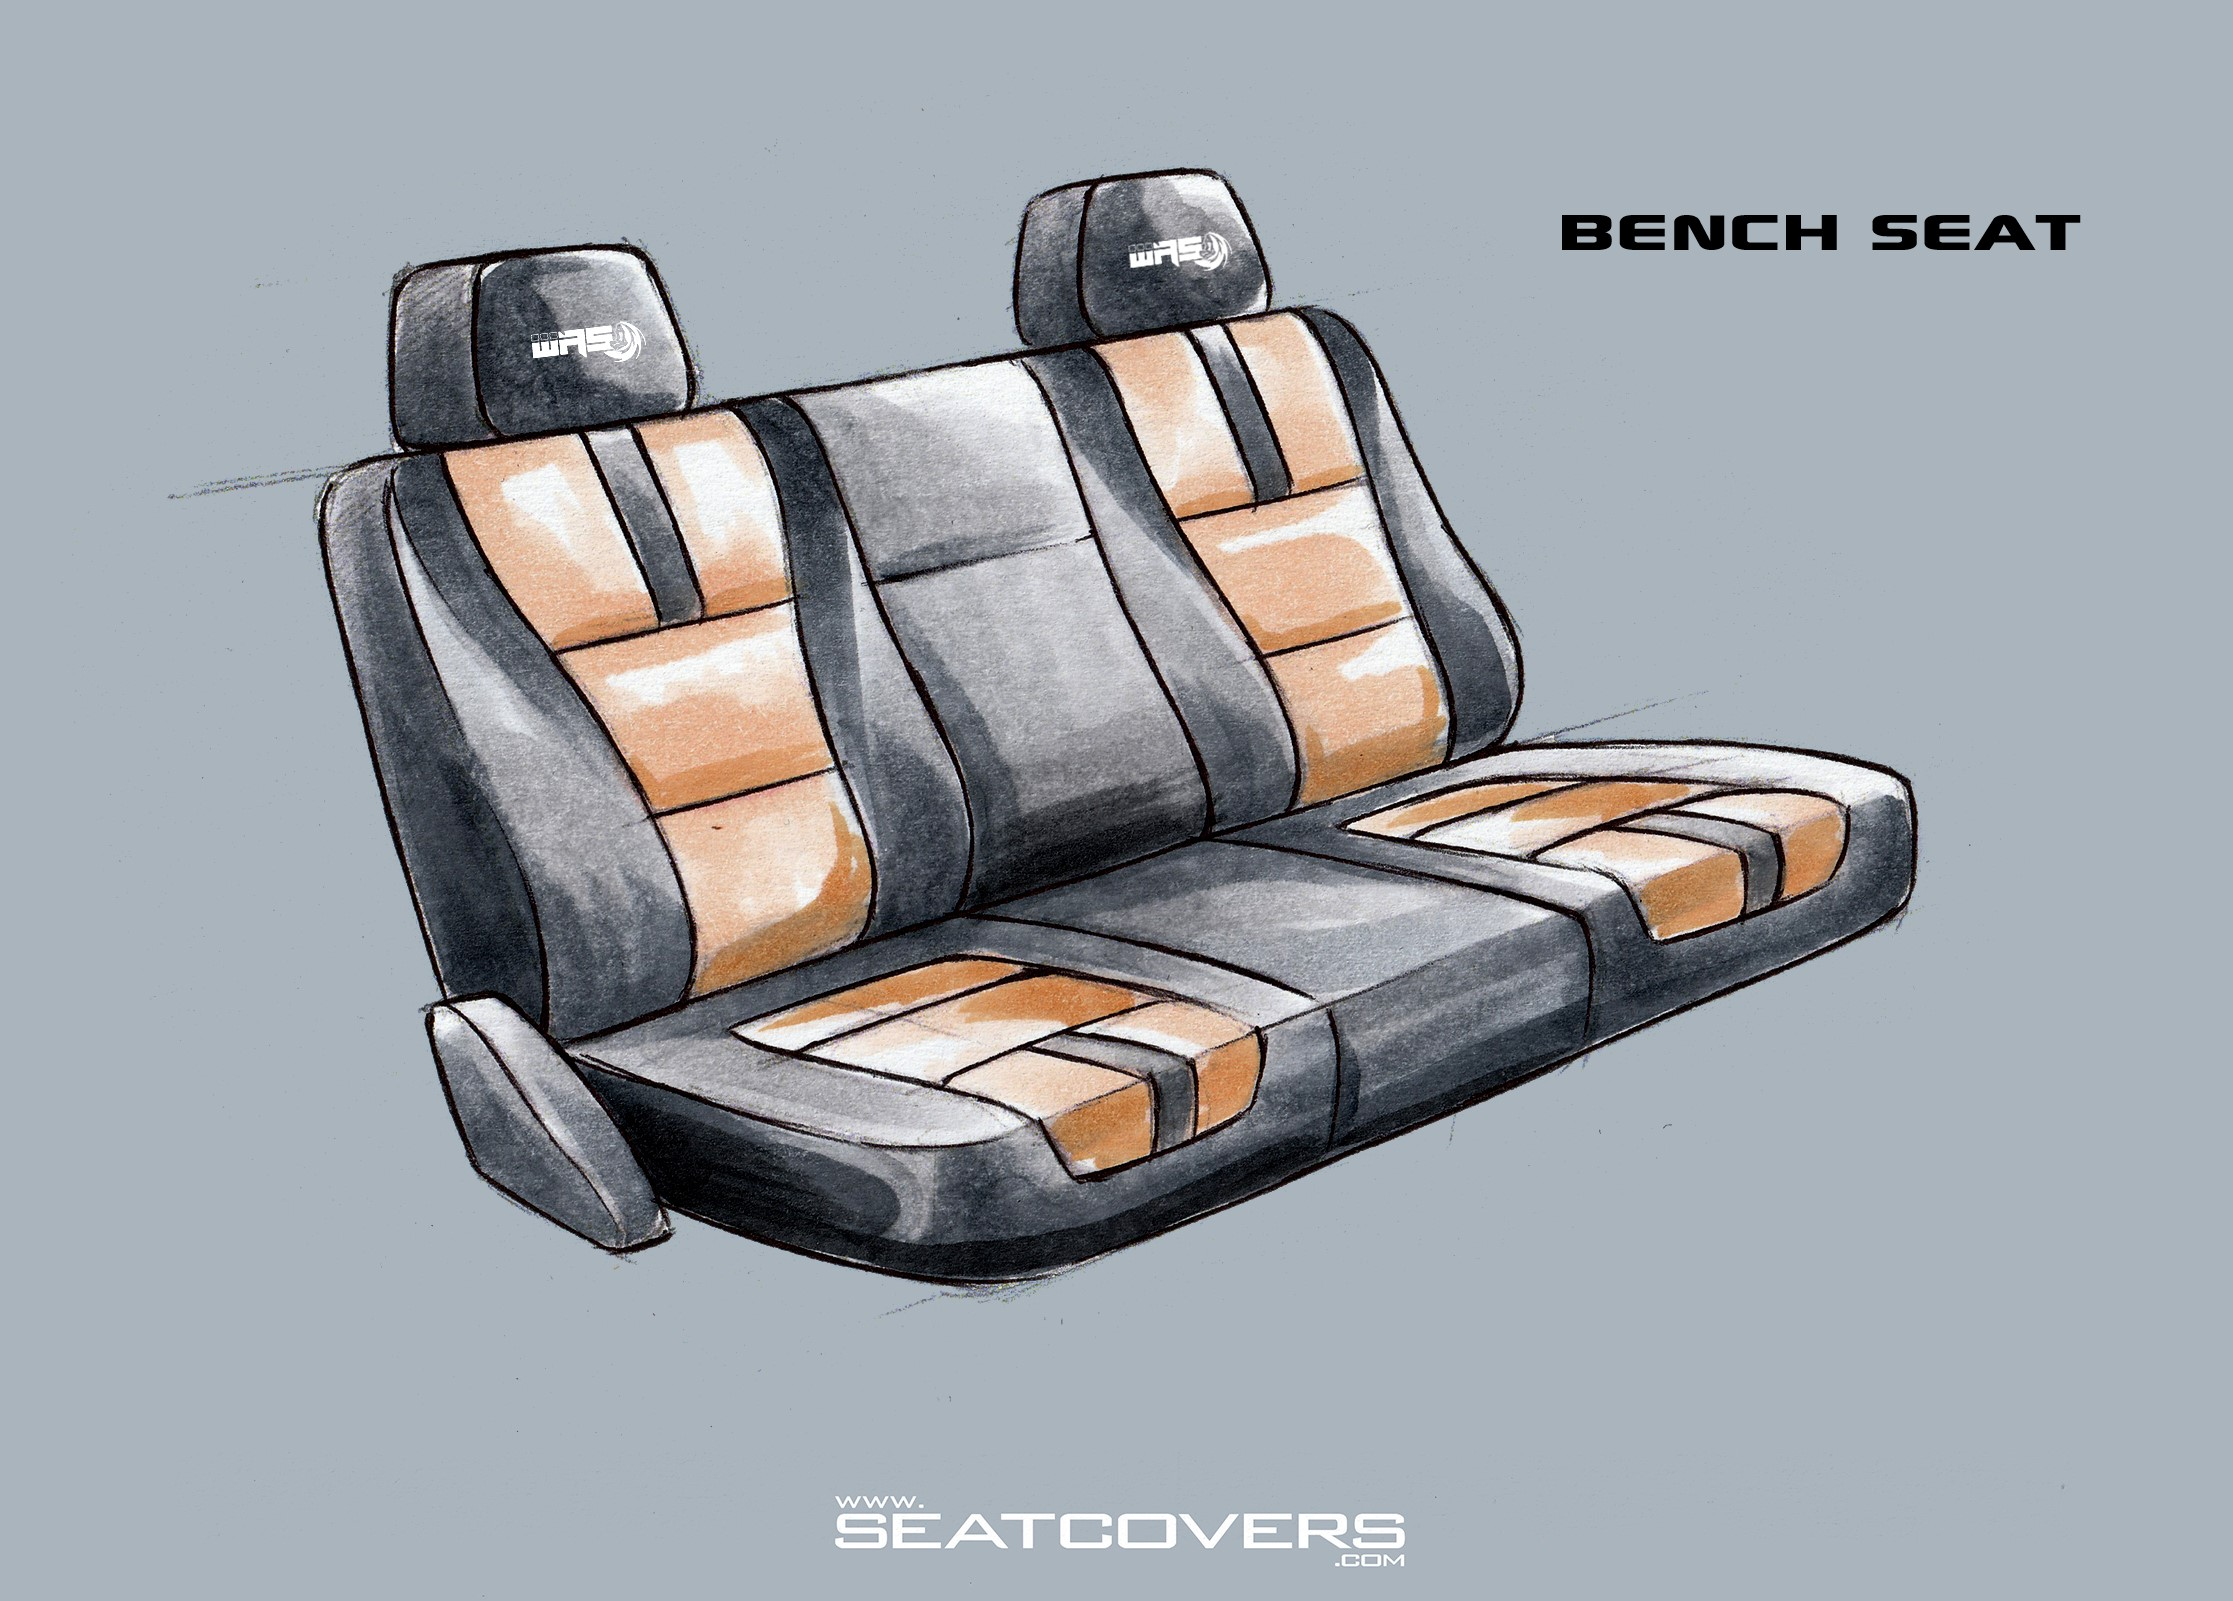 Jeep wrangler seat covers jeep wrangler rear bench seat covers seatcovers.com